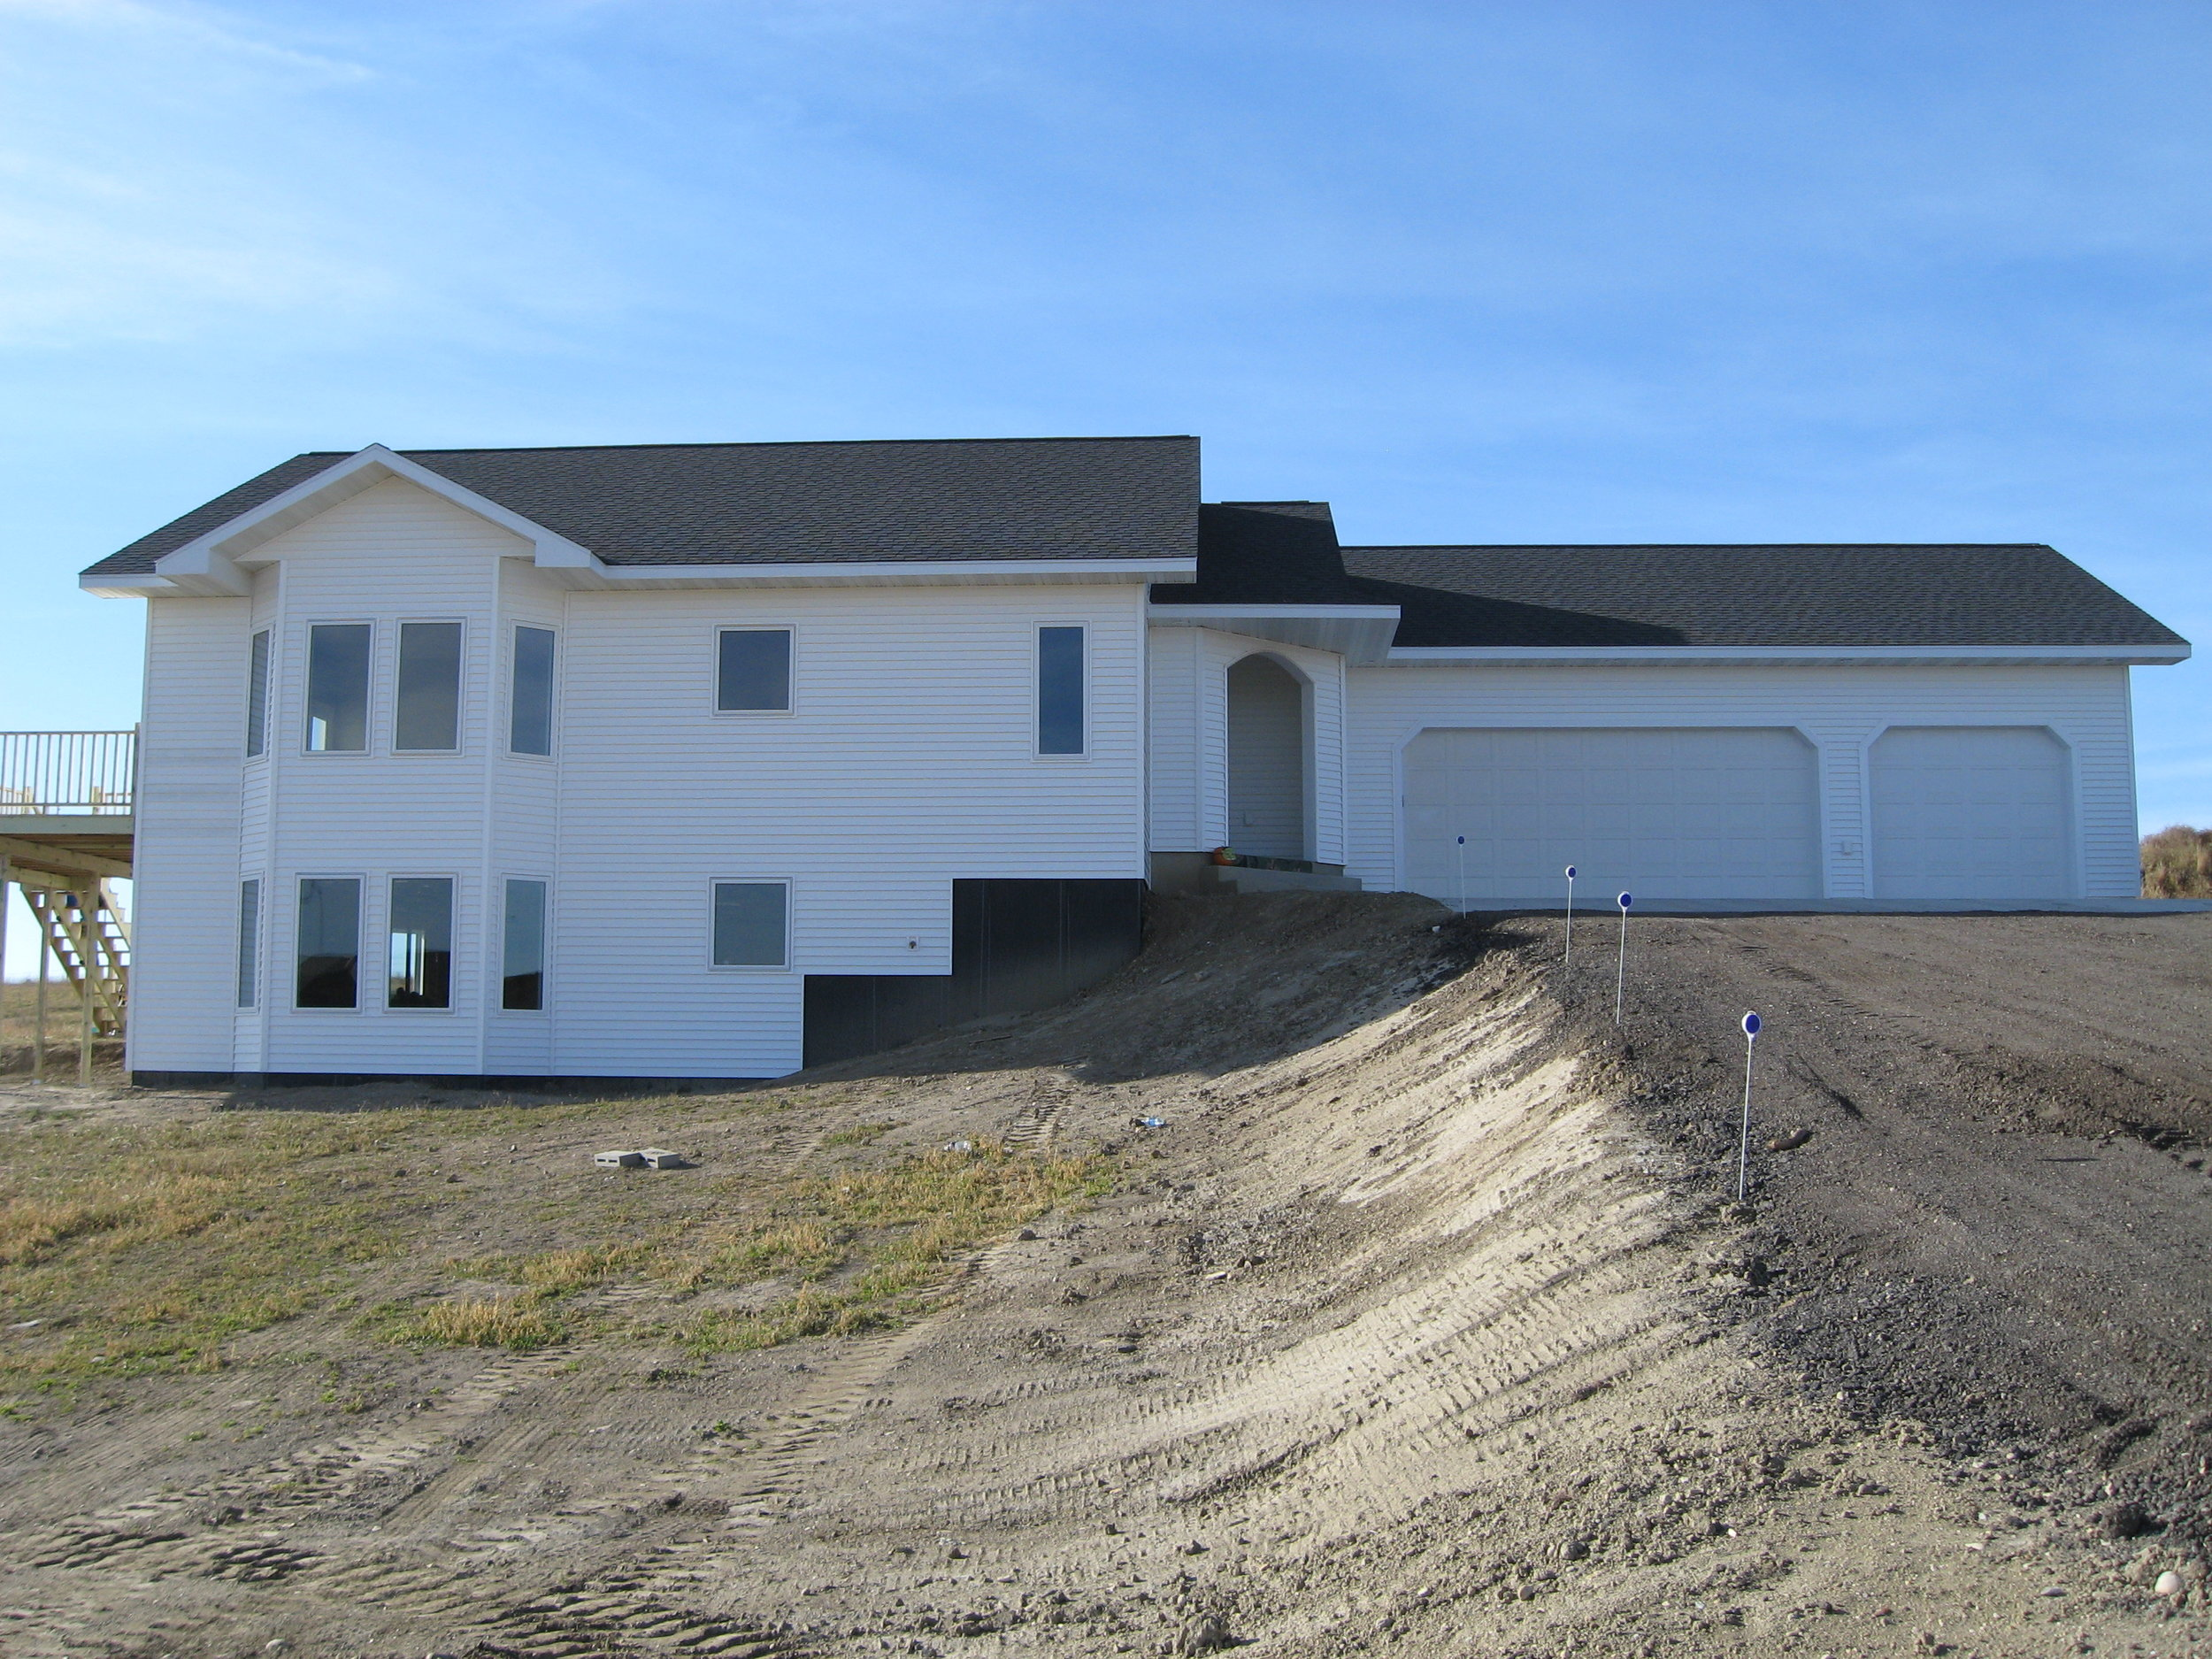 New home build with dufner construction as the general contractor